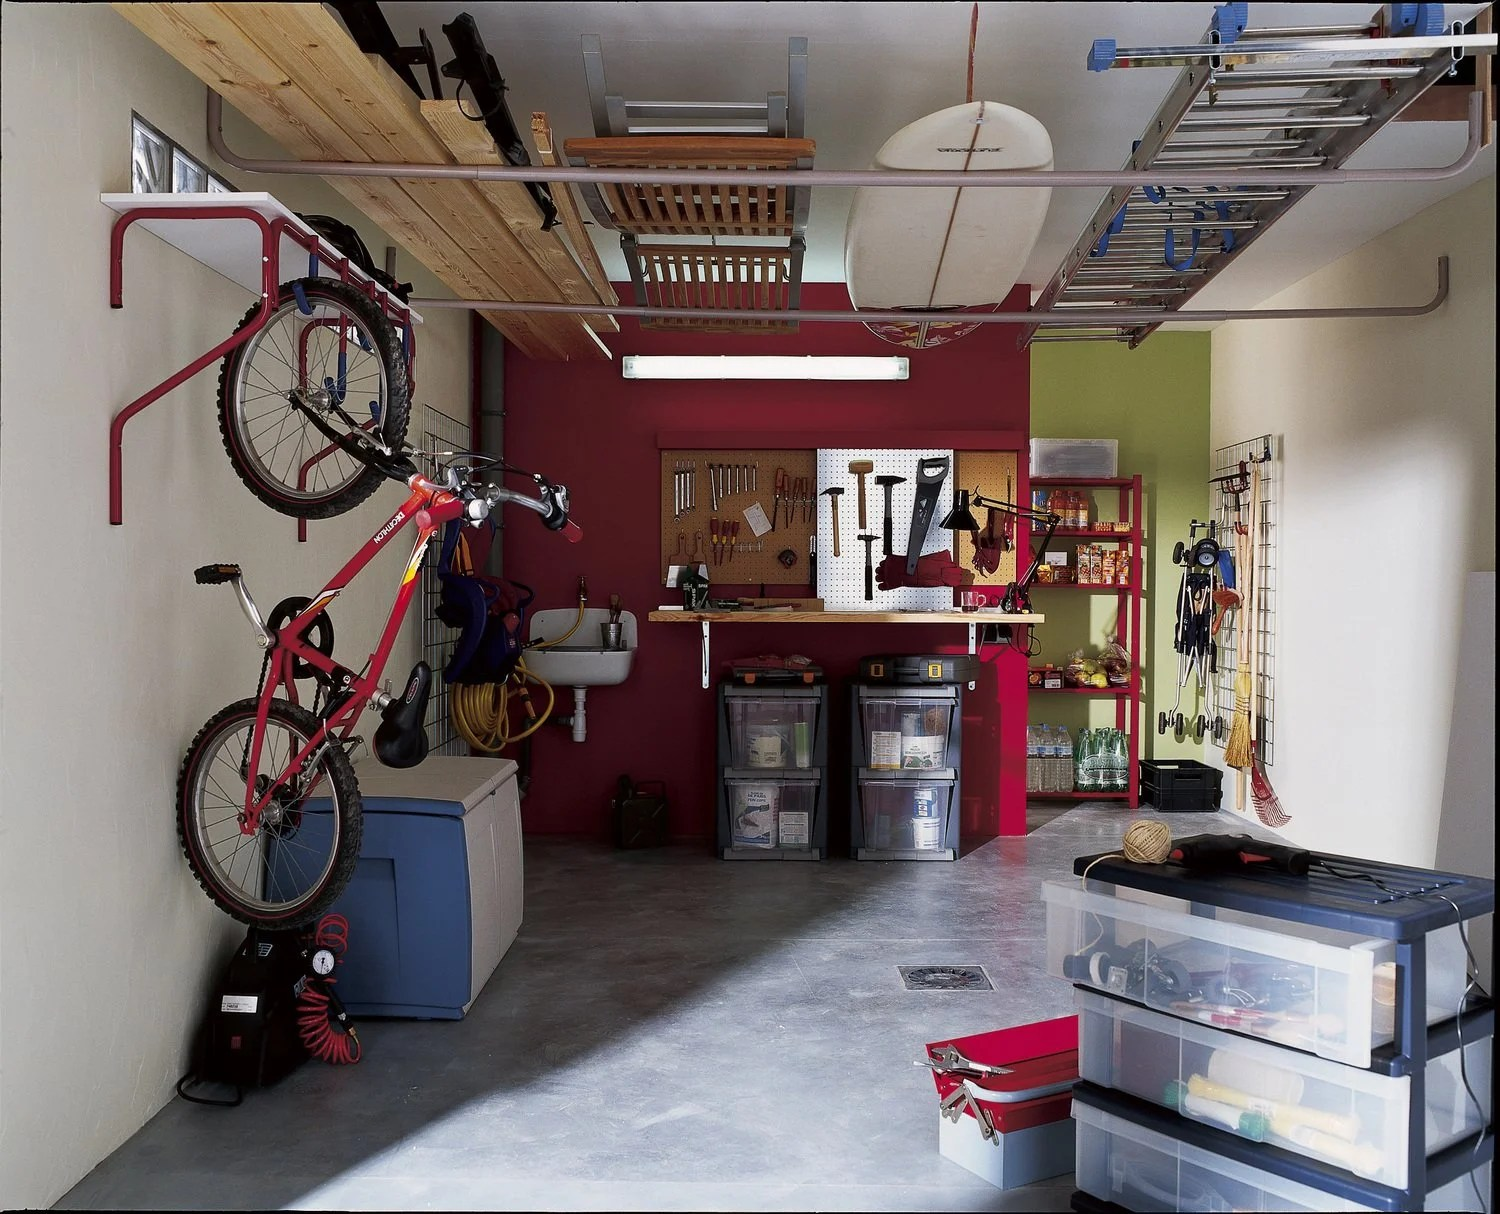 Idee Amenagement Garage Rangements Dans Le Garage Leroy Merlin